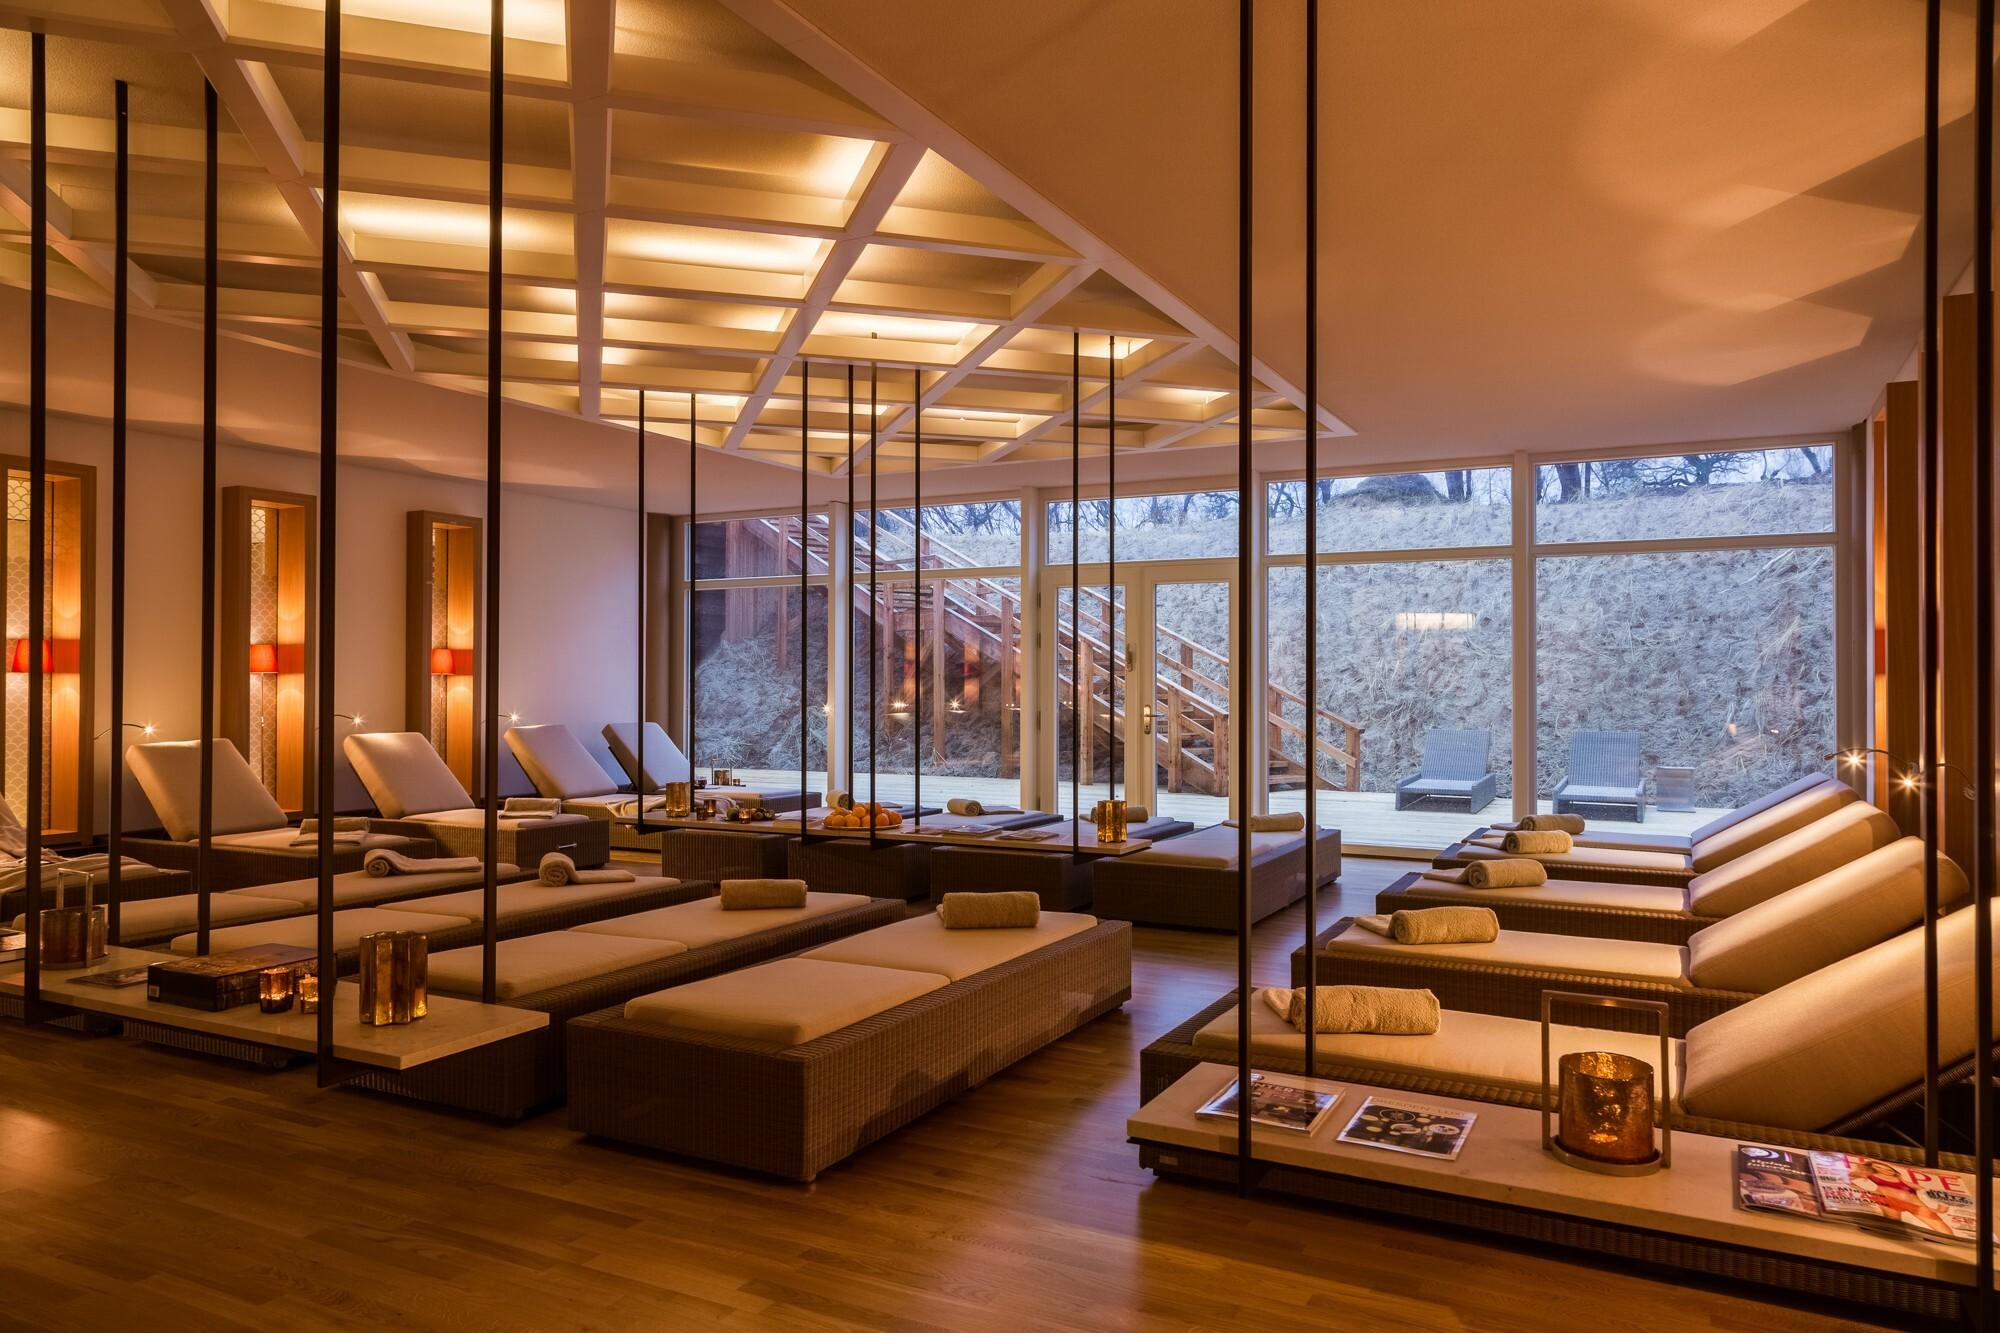 Spa with loungers